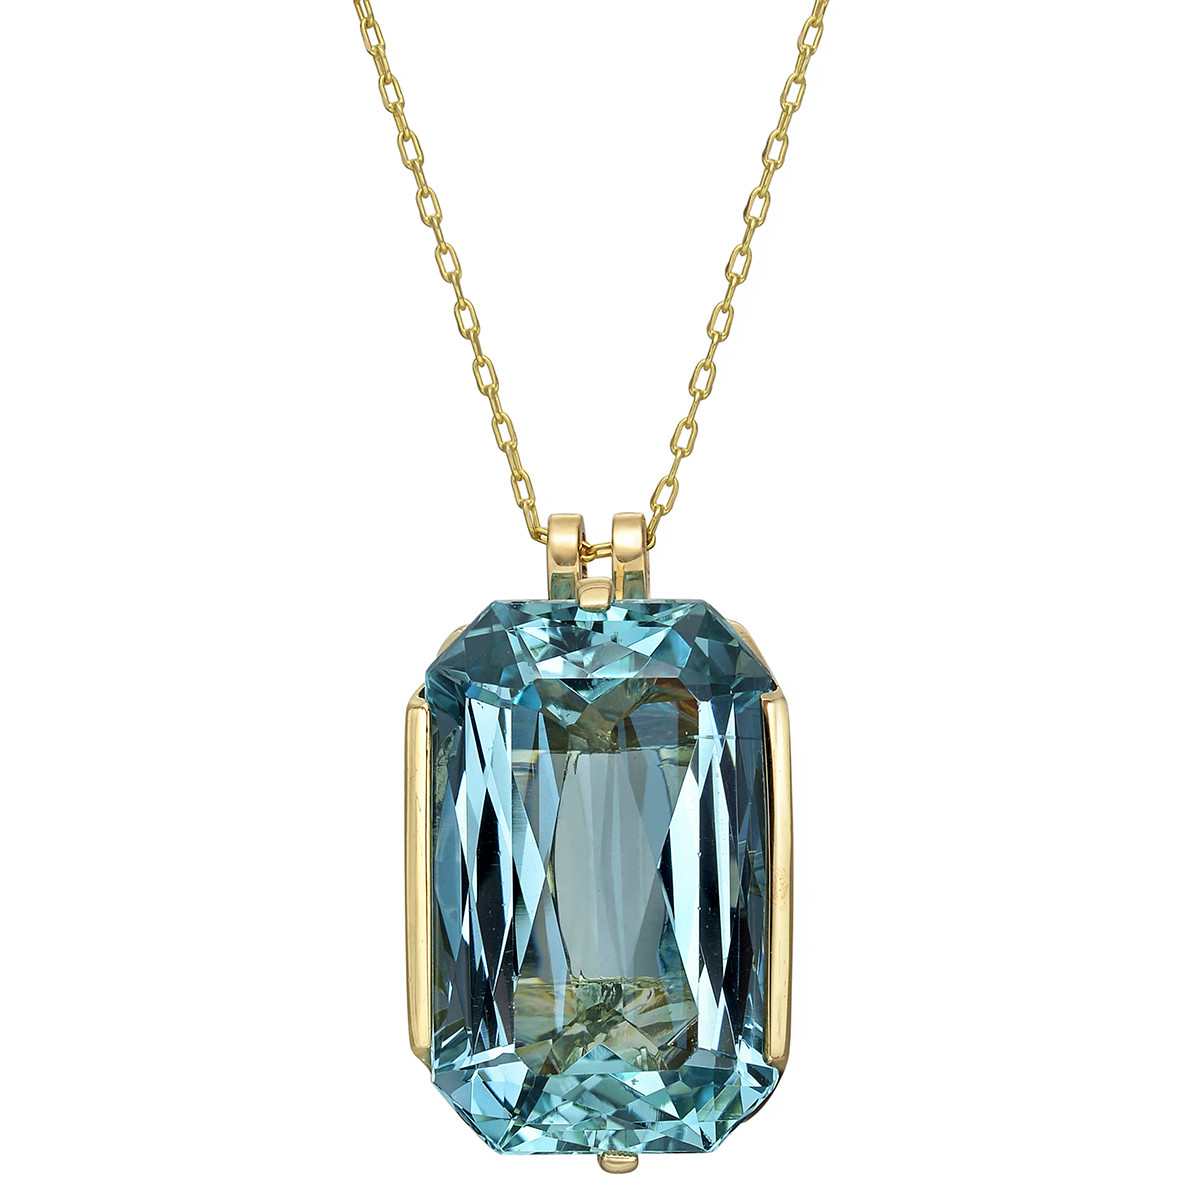 Large Emerald-Cut Aquamarine Pendant Necklace